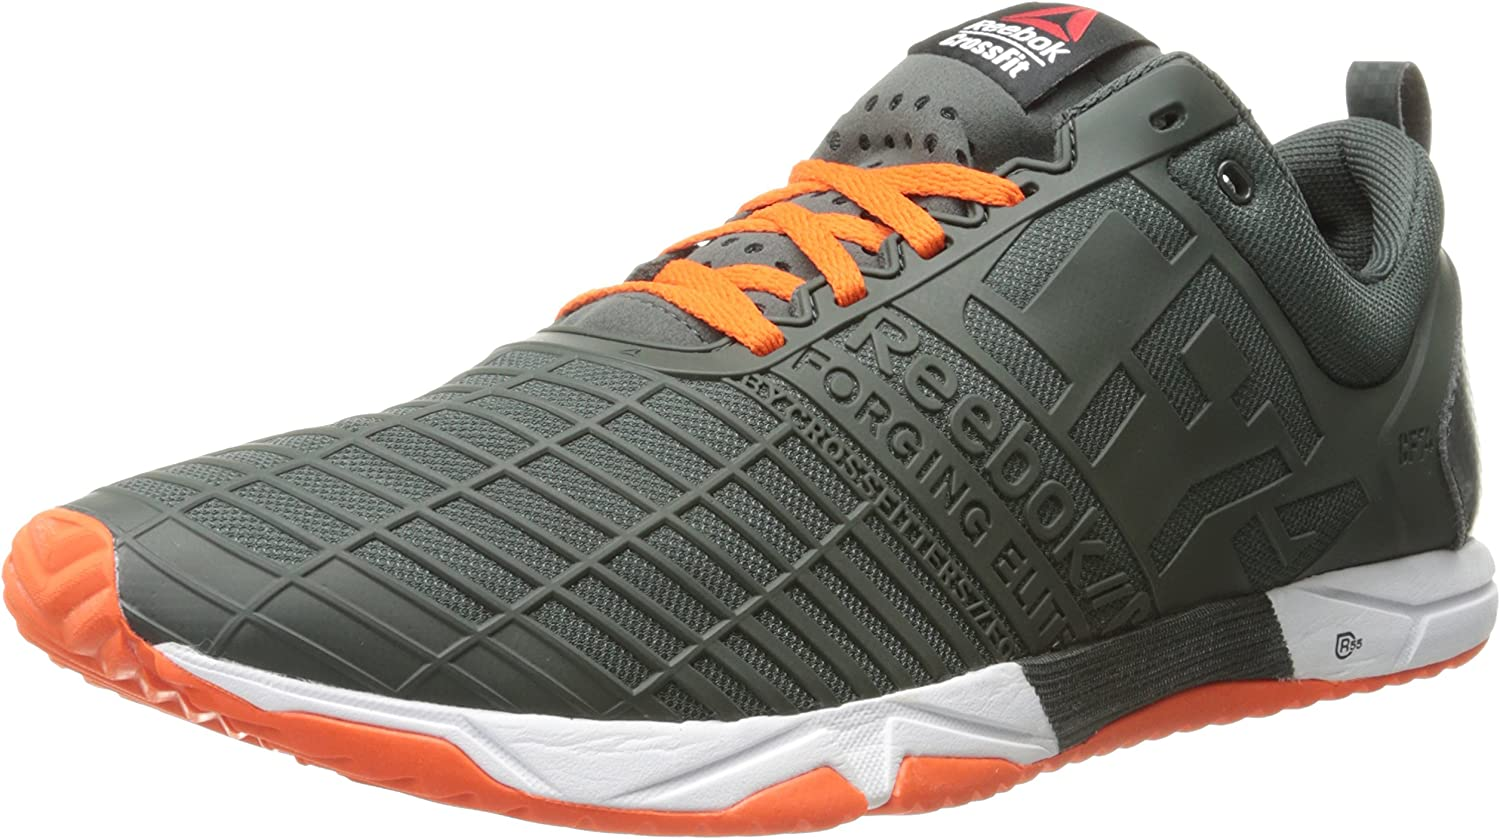 Reebok Men's Crossfit Sprint TR Training Shoe: Amazon.ca: Shoes & Handbags